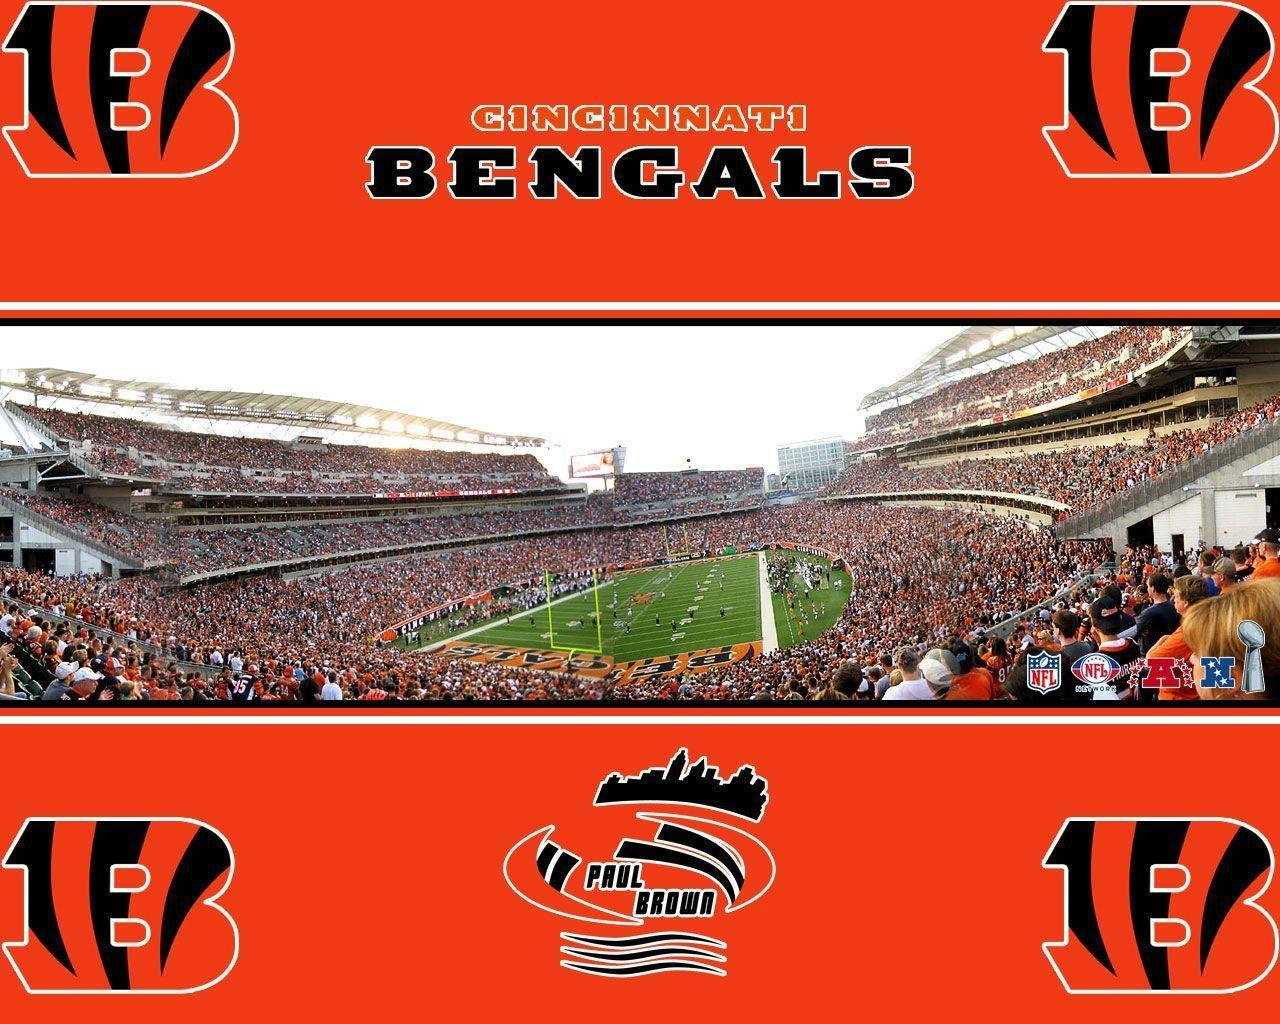 Cincinnati Bengals stadium wallpaper